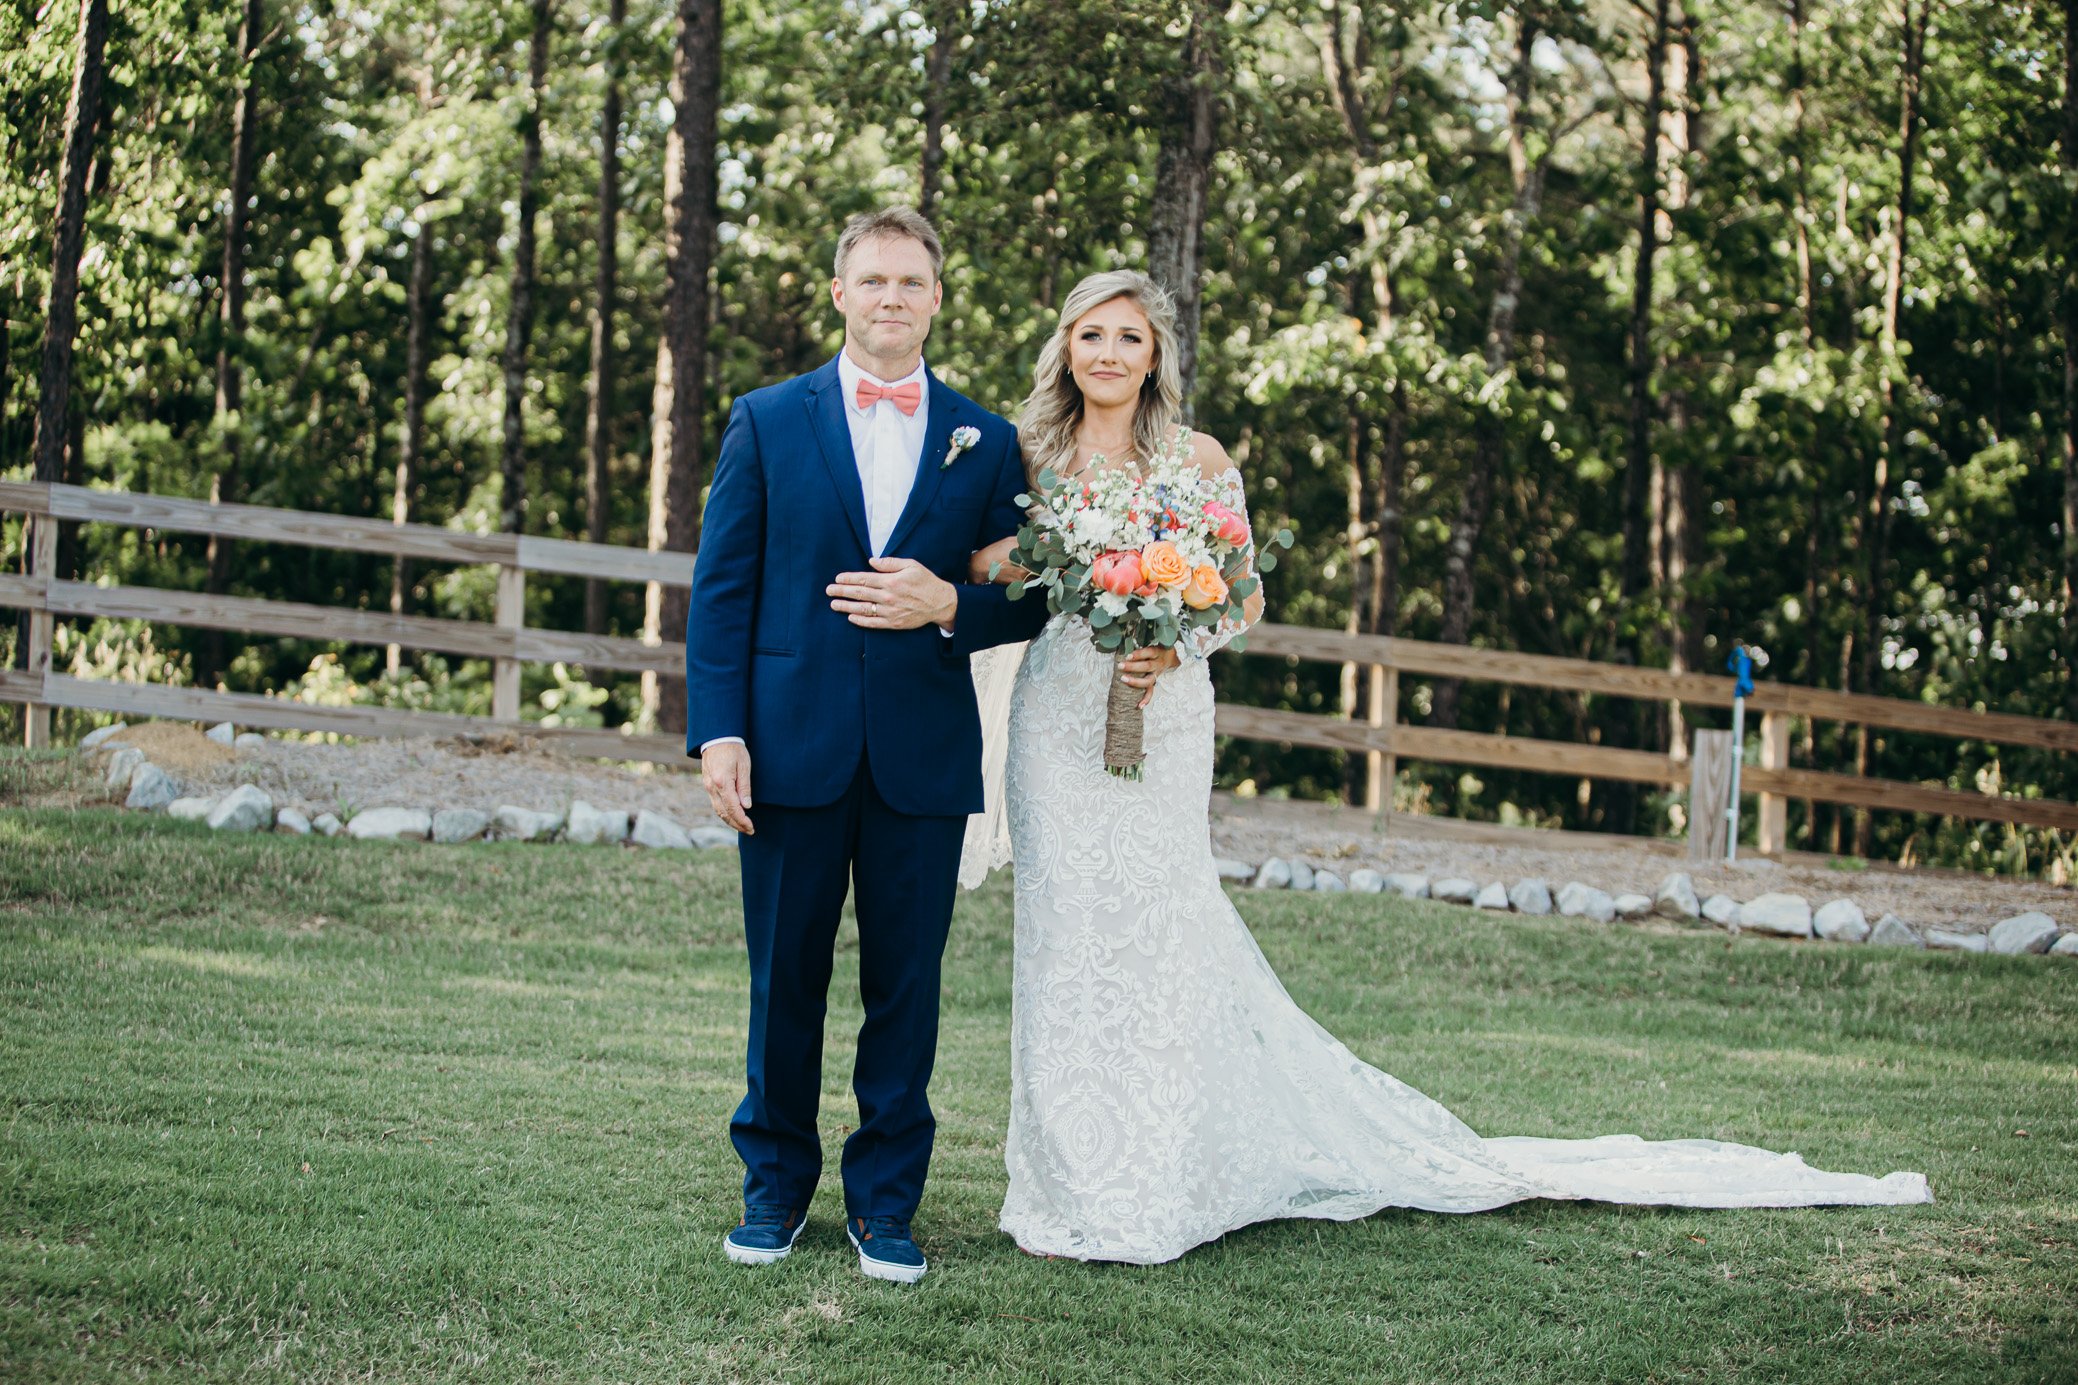 Alabama Wedding Photography at Weddings at Cabin Bluff in Springville, Alabama by David A. Smith of DSmithImages Wedding Photography, Portraits, and Events, a wedding photographer in Birmingham, Alabama